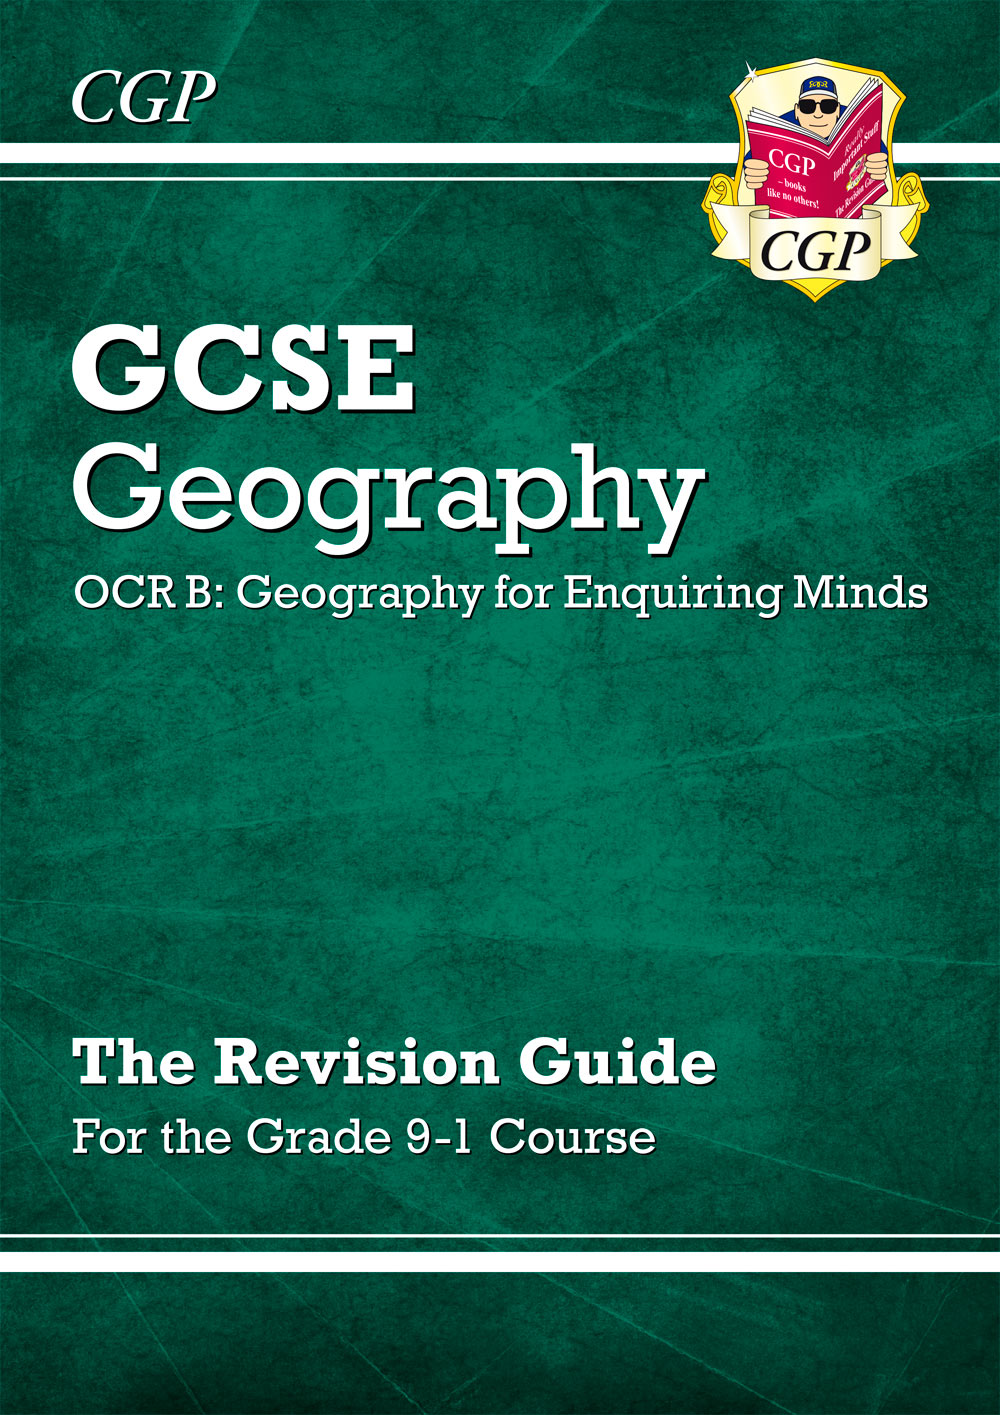 GRR44 - New Grade 9-1 GCSE Geography OCR B: Geography for Enquiring Minds - Revision Guide